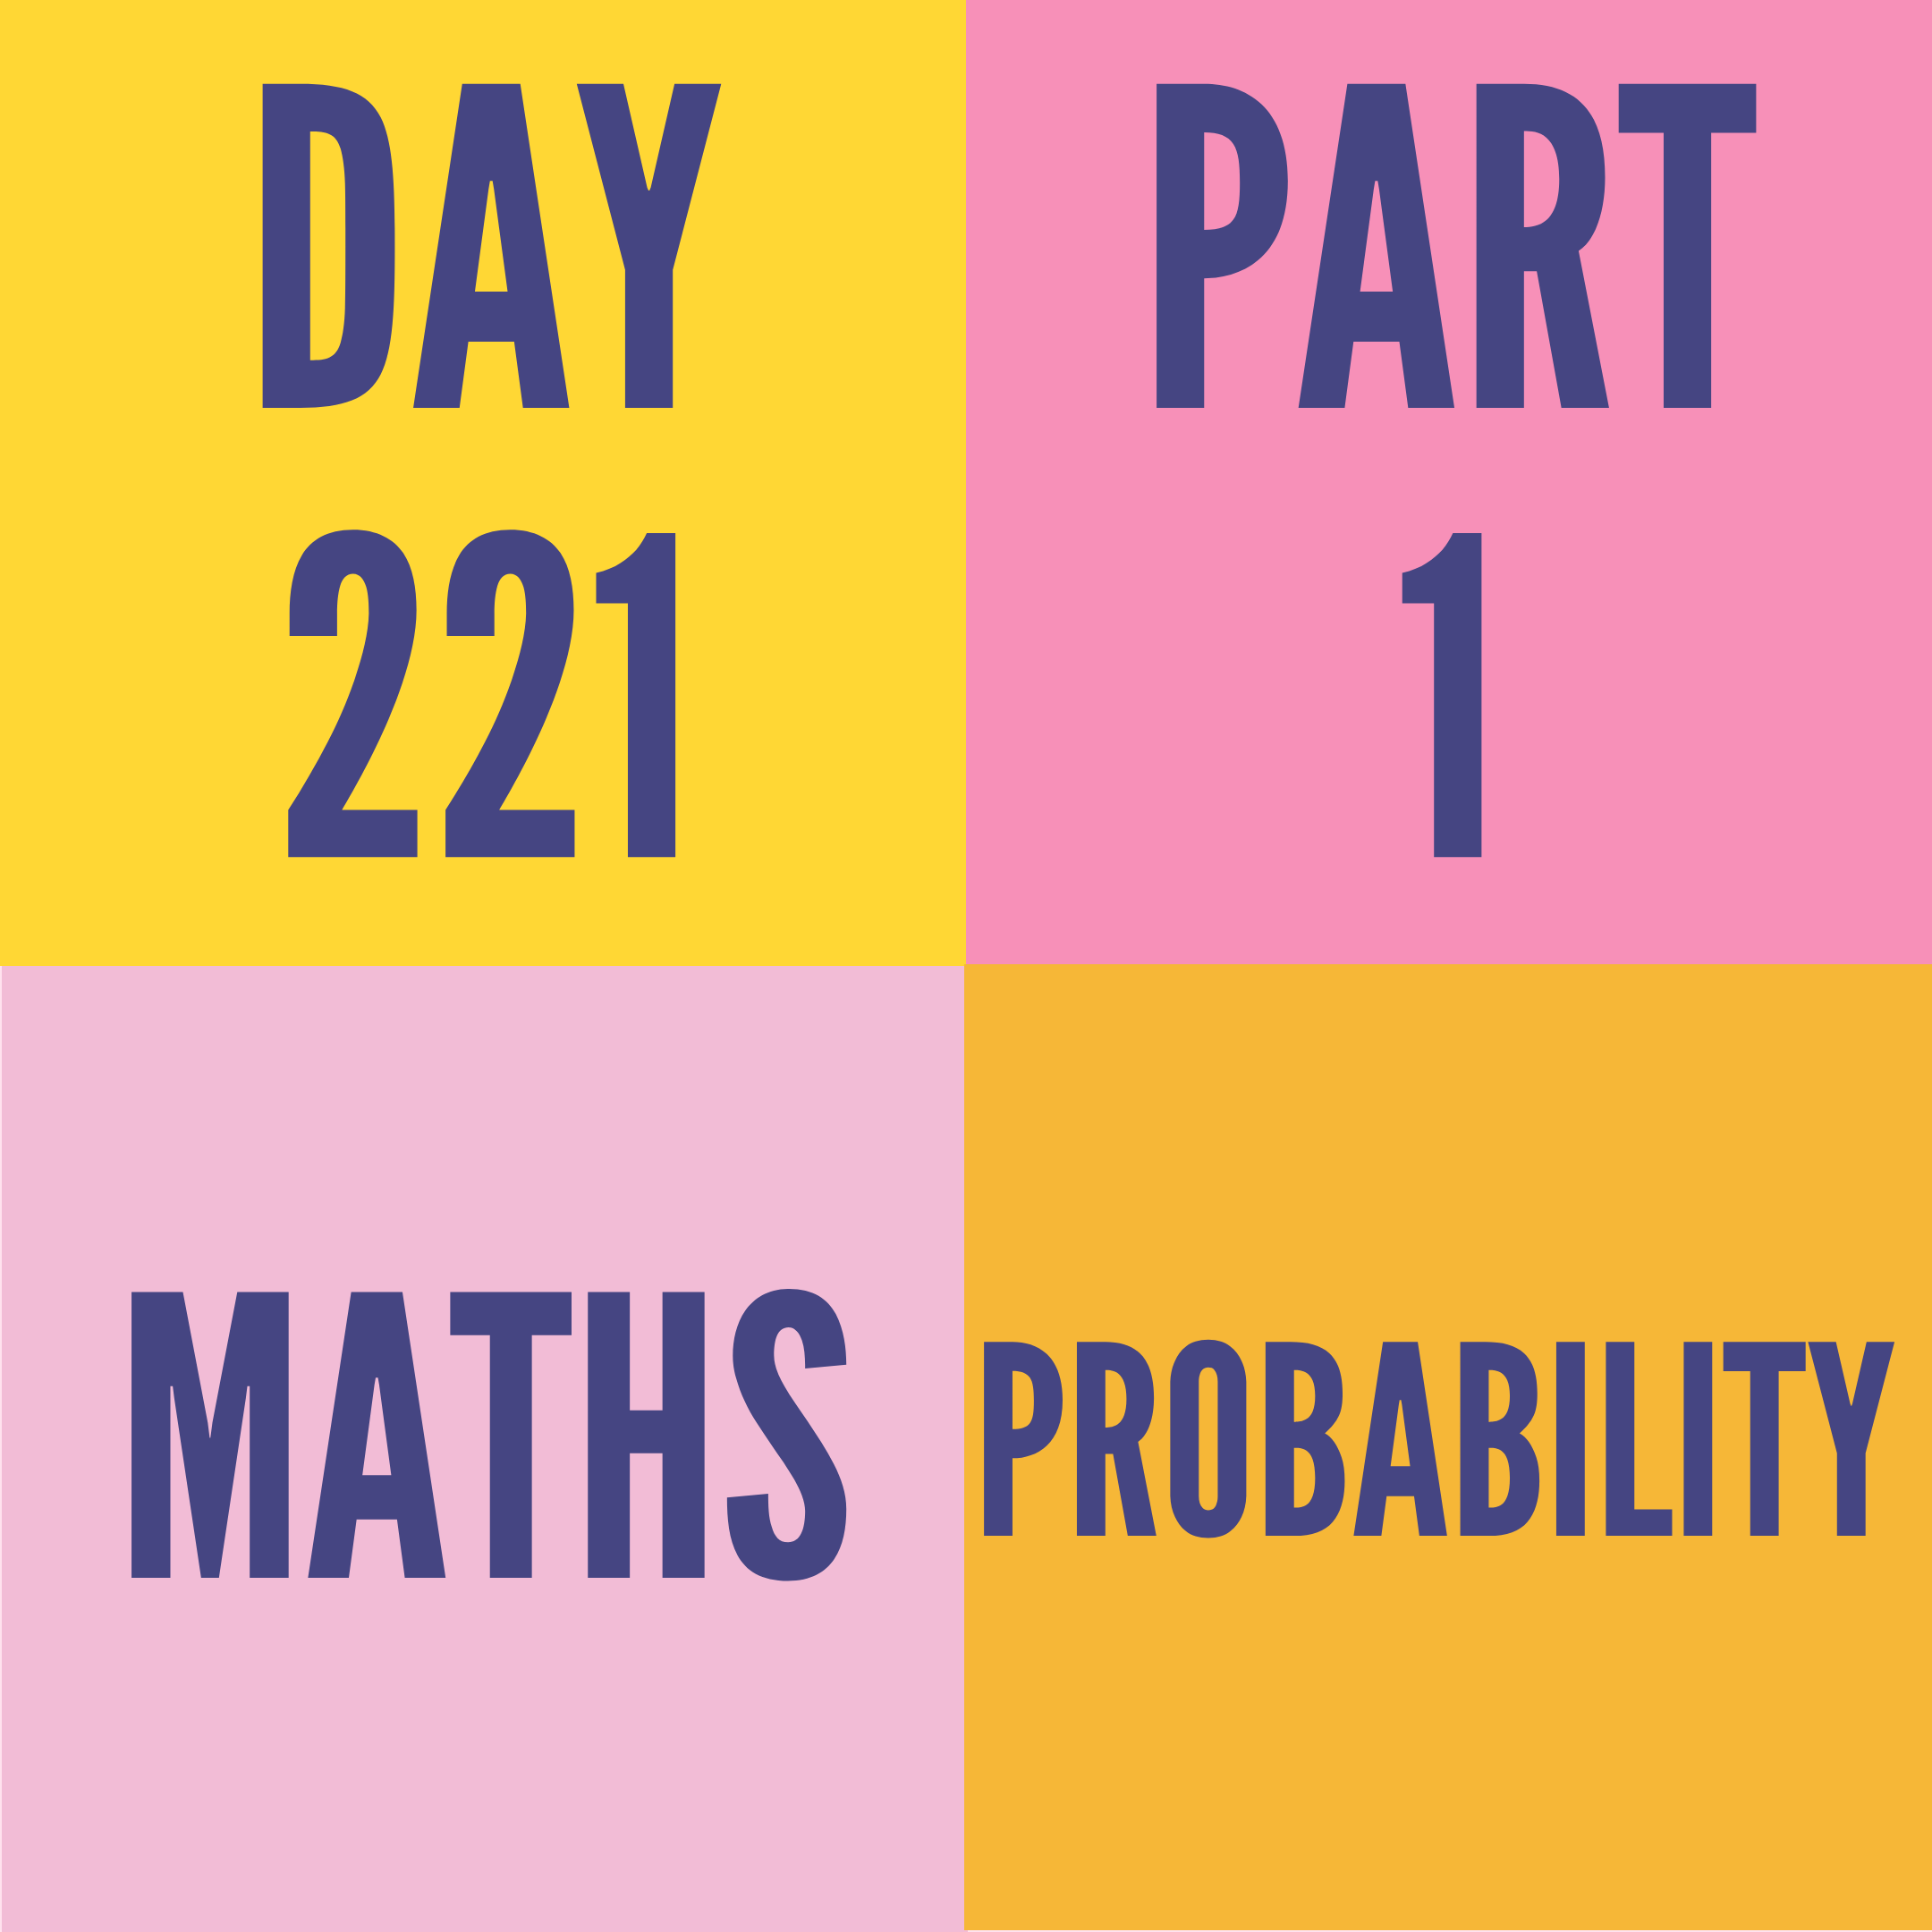 DAY-221 PART-1 PROBABILITY